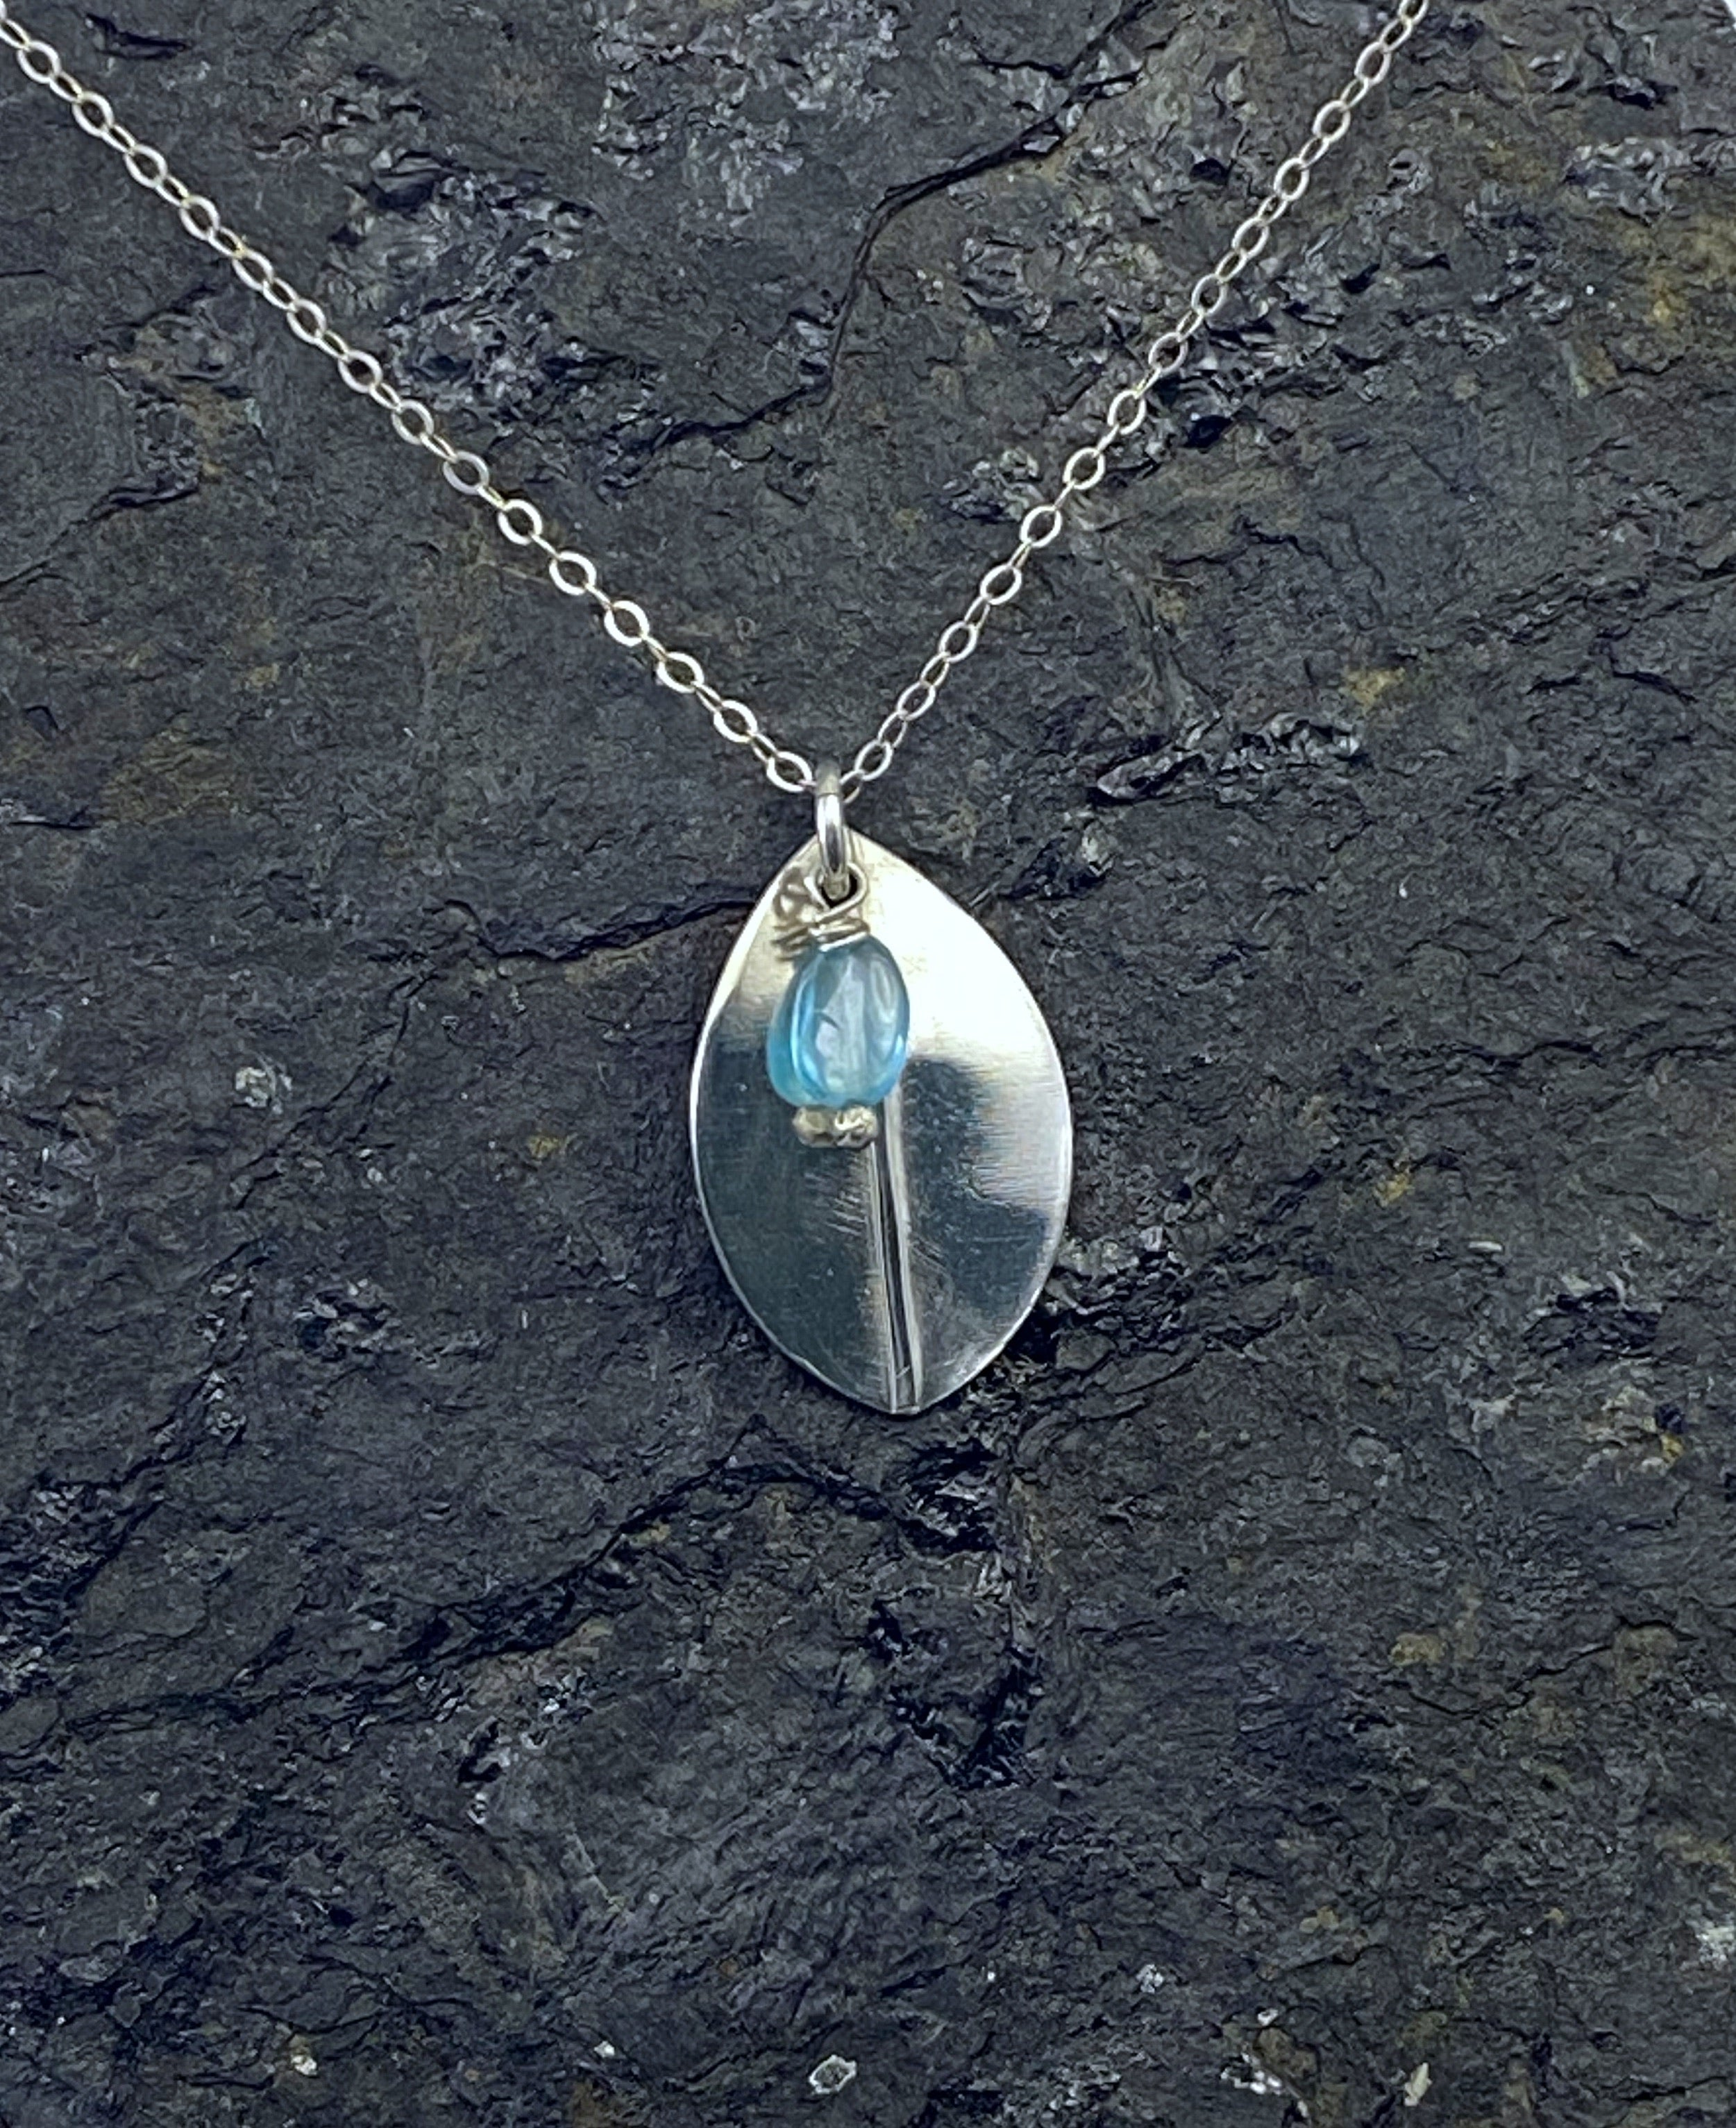 Forged sterling silver leaf necklace with apatite gemstone